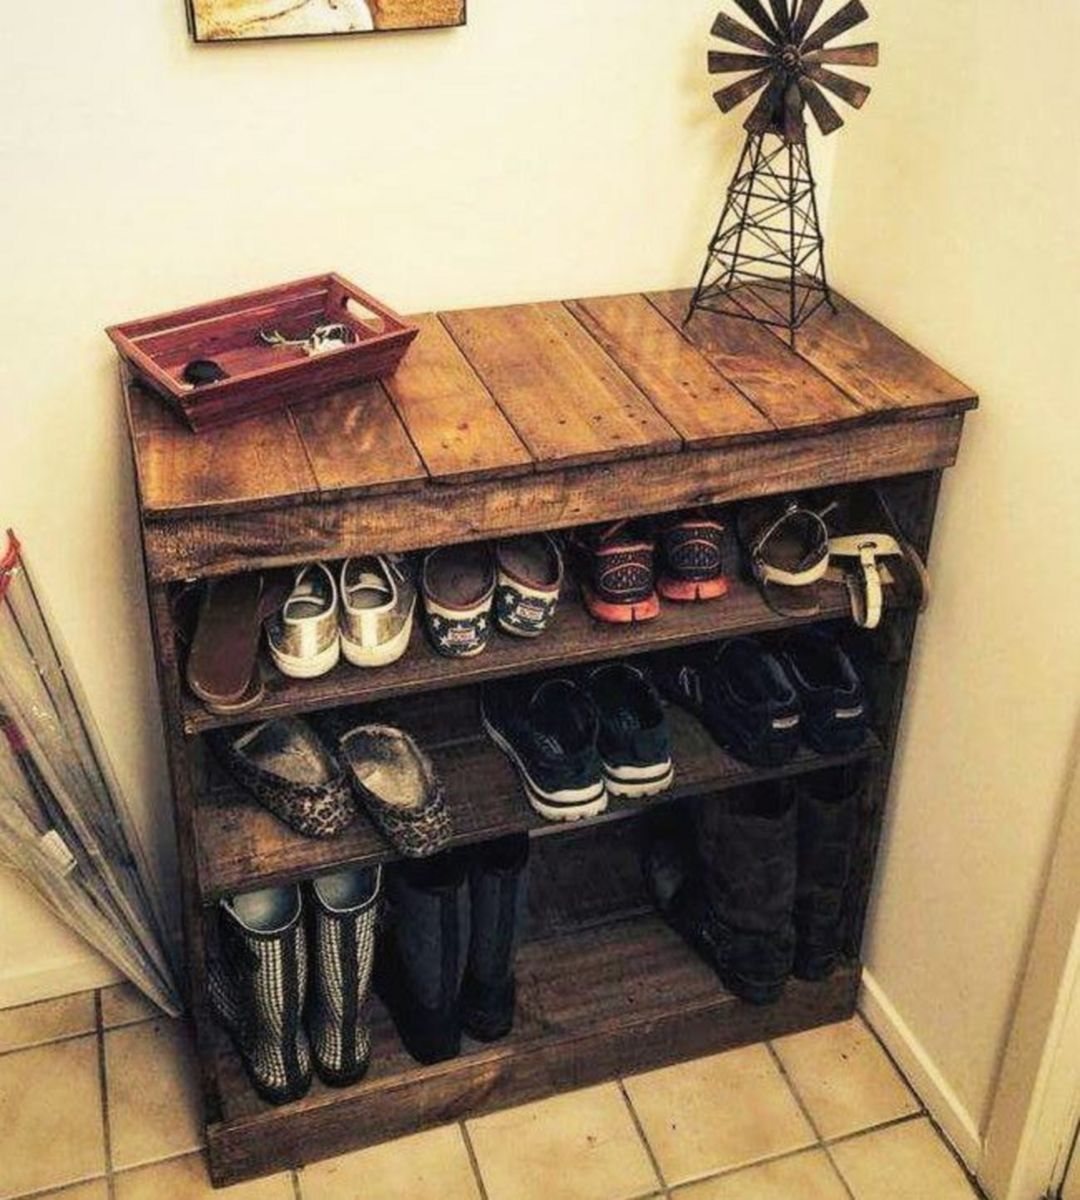 20 Awesome DIY Pallet Ideas to Decorate Your Entryway #palletprojects